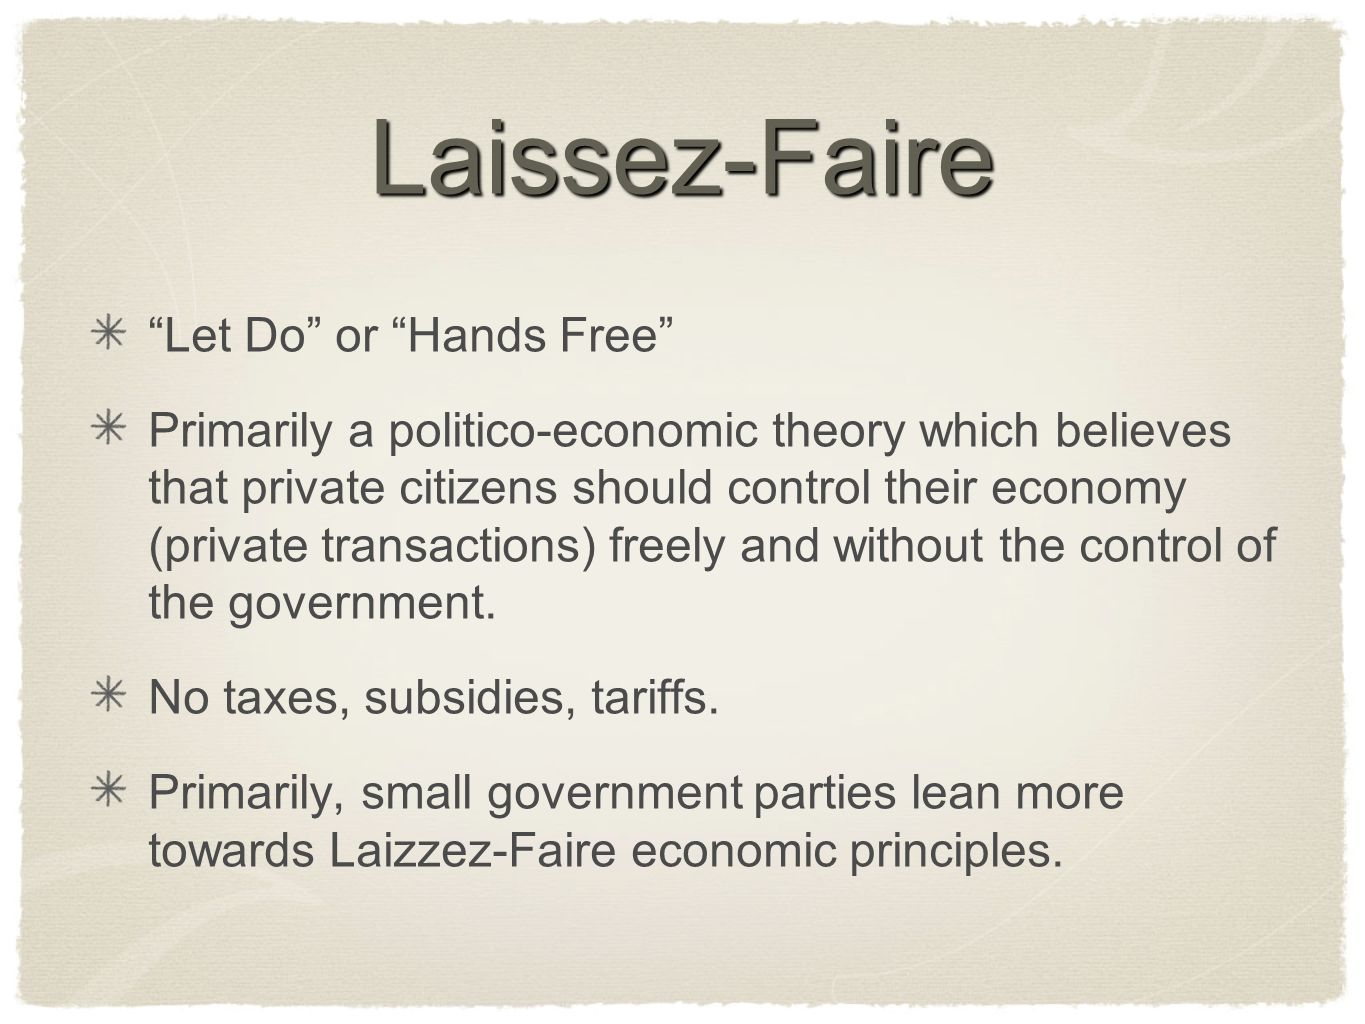 Laissez-Faire Let Do or Hands Free Primarily a politico-economic theory which believes that private citizens should control their economy (private transactions) freely and without the control of the government.